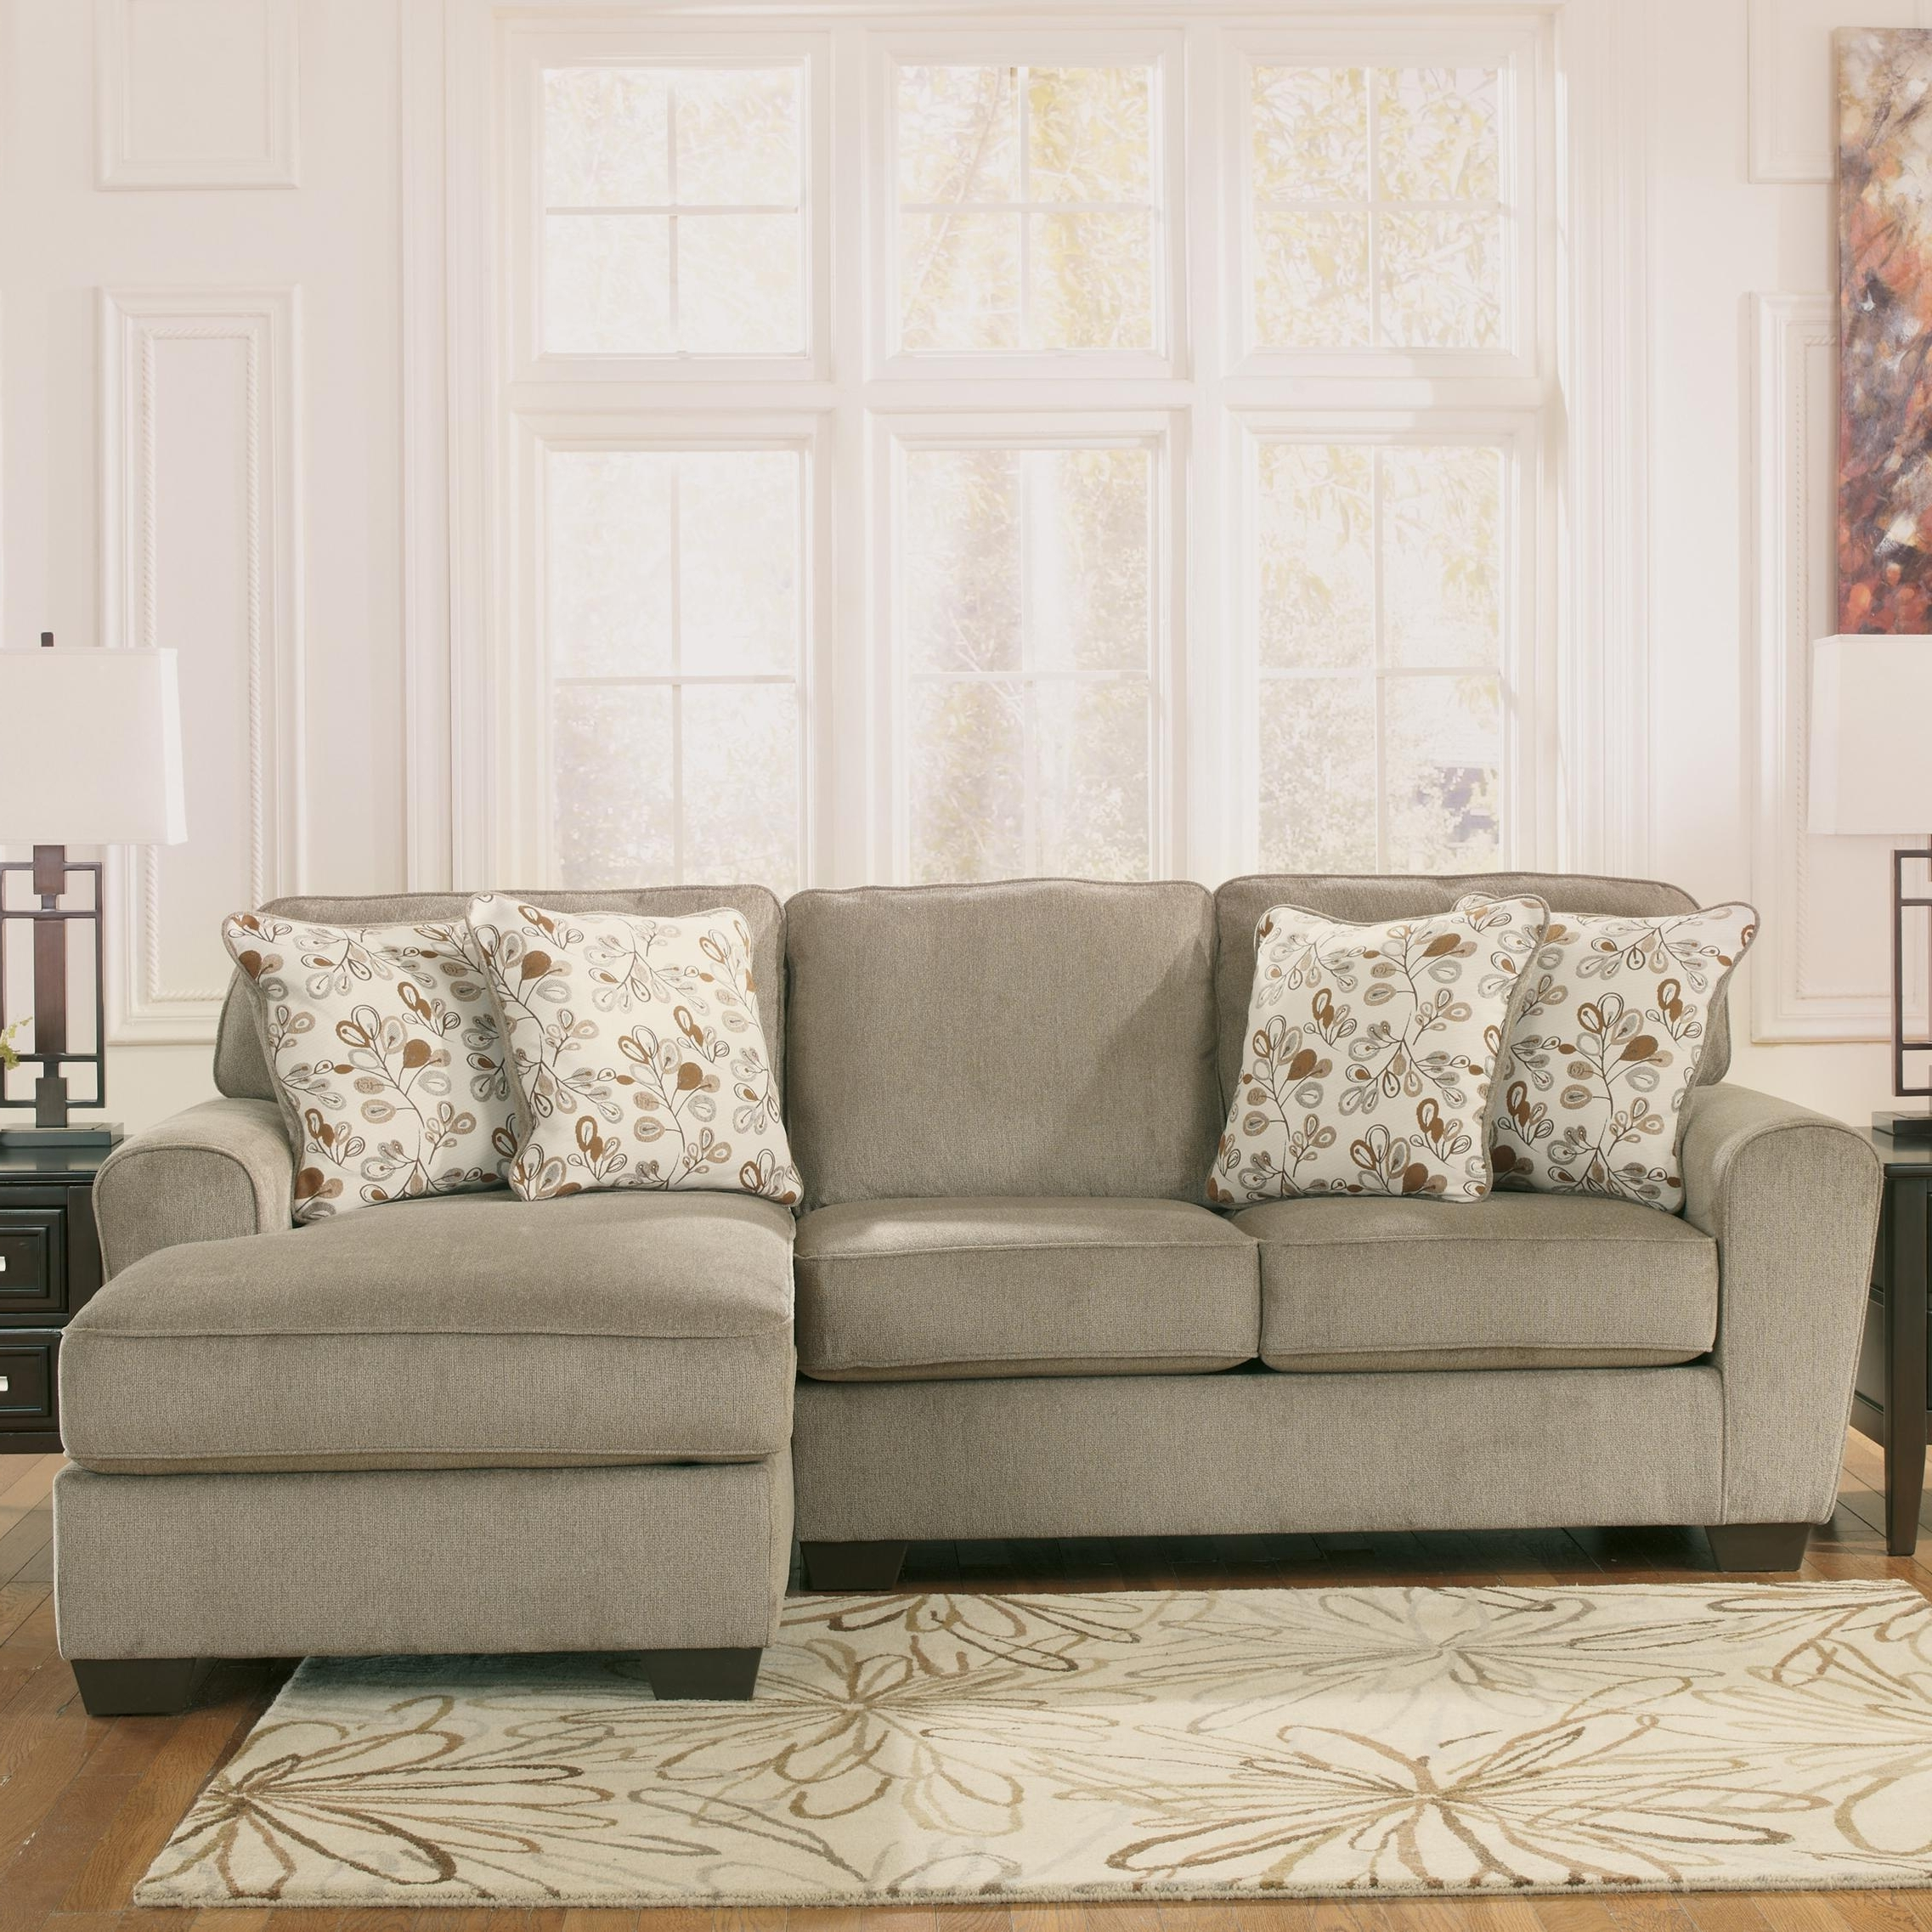 Ashley Furniture Sectional Sofas – Mforum Intended For Most Current 10X8 Sectional Sofas (Gallery 14 of 20)